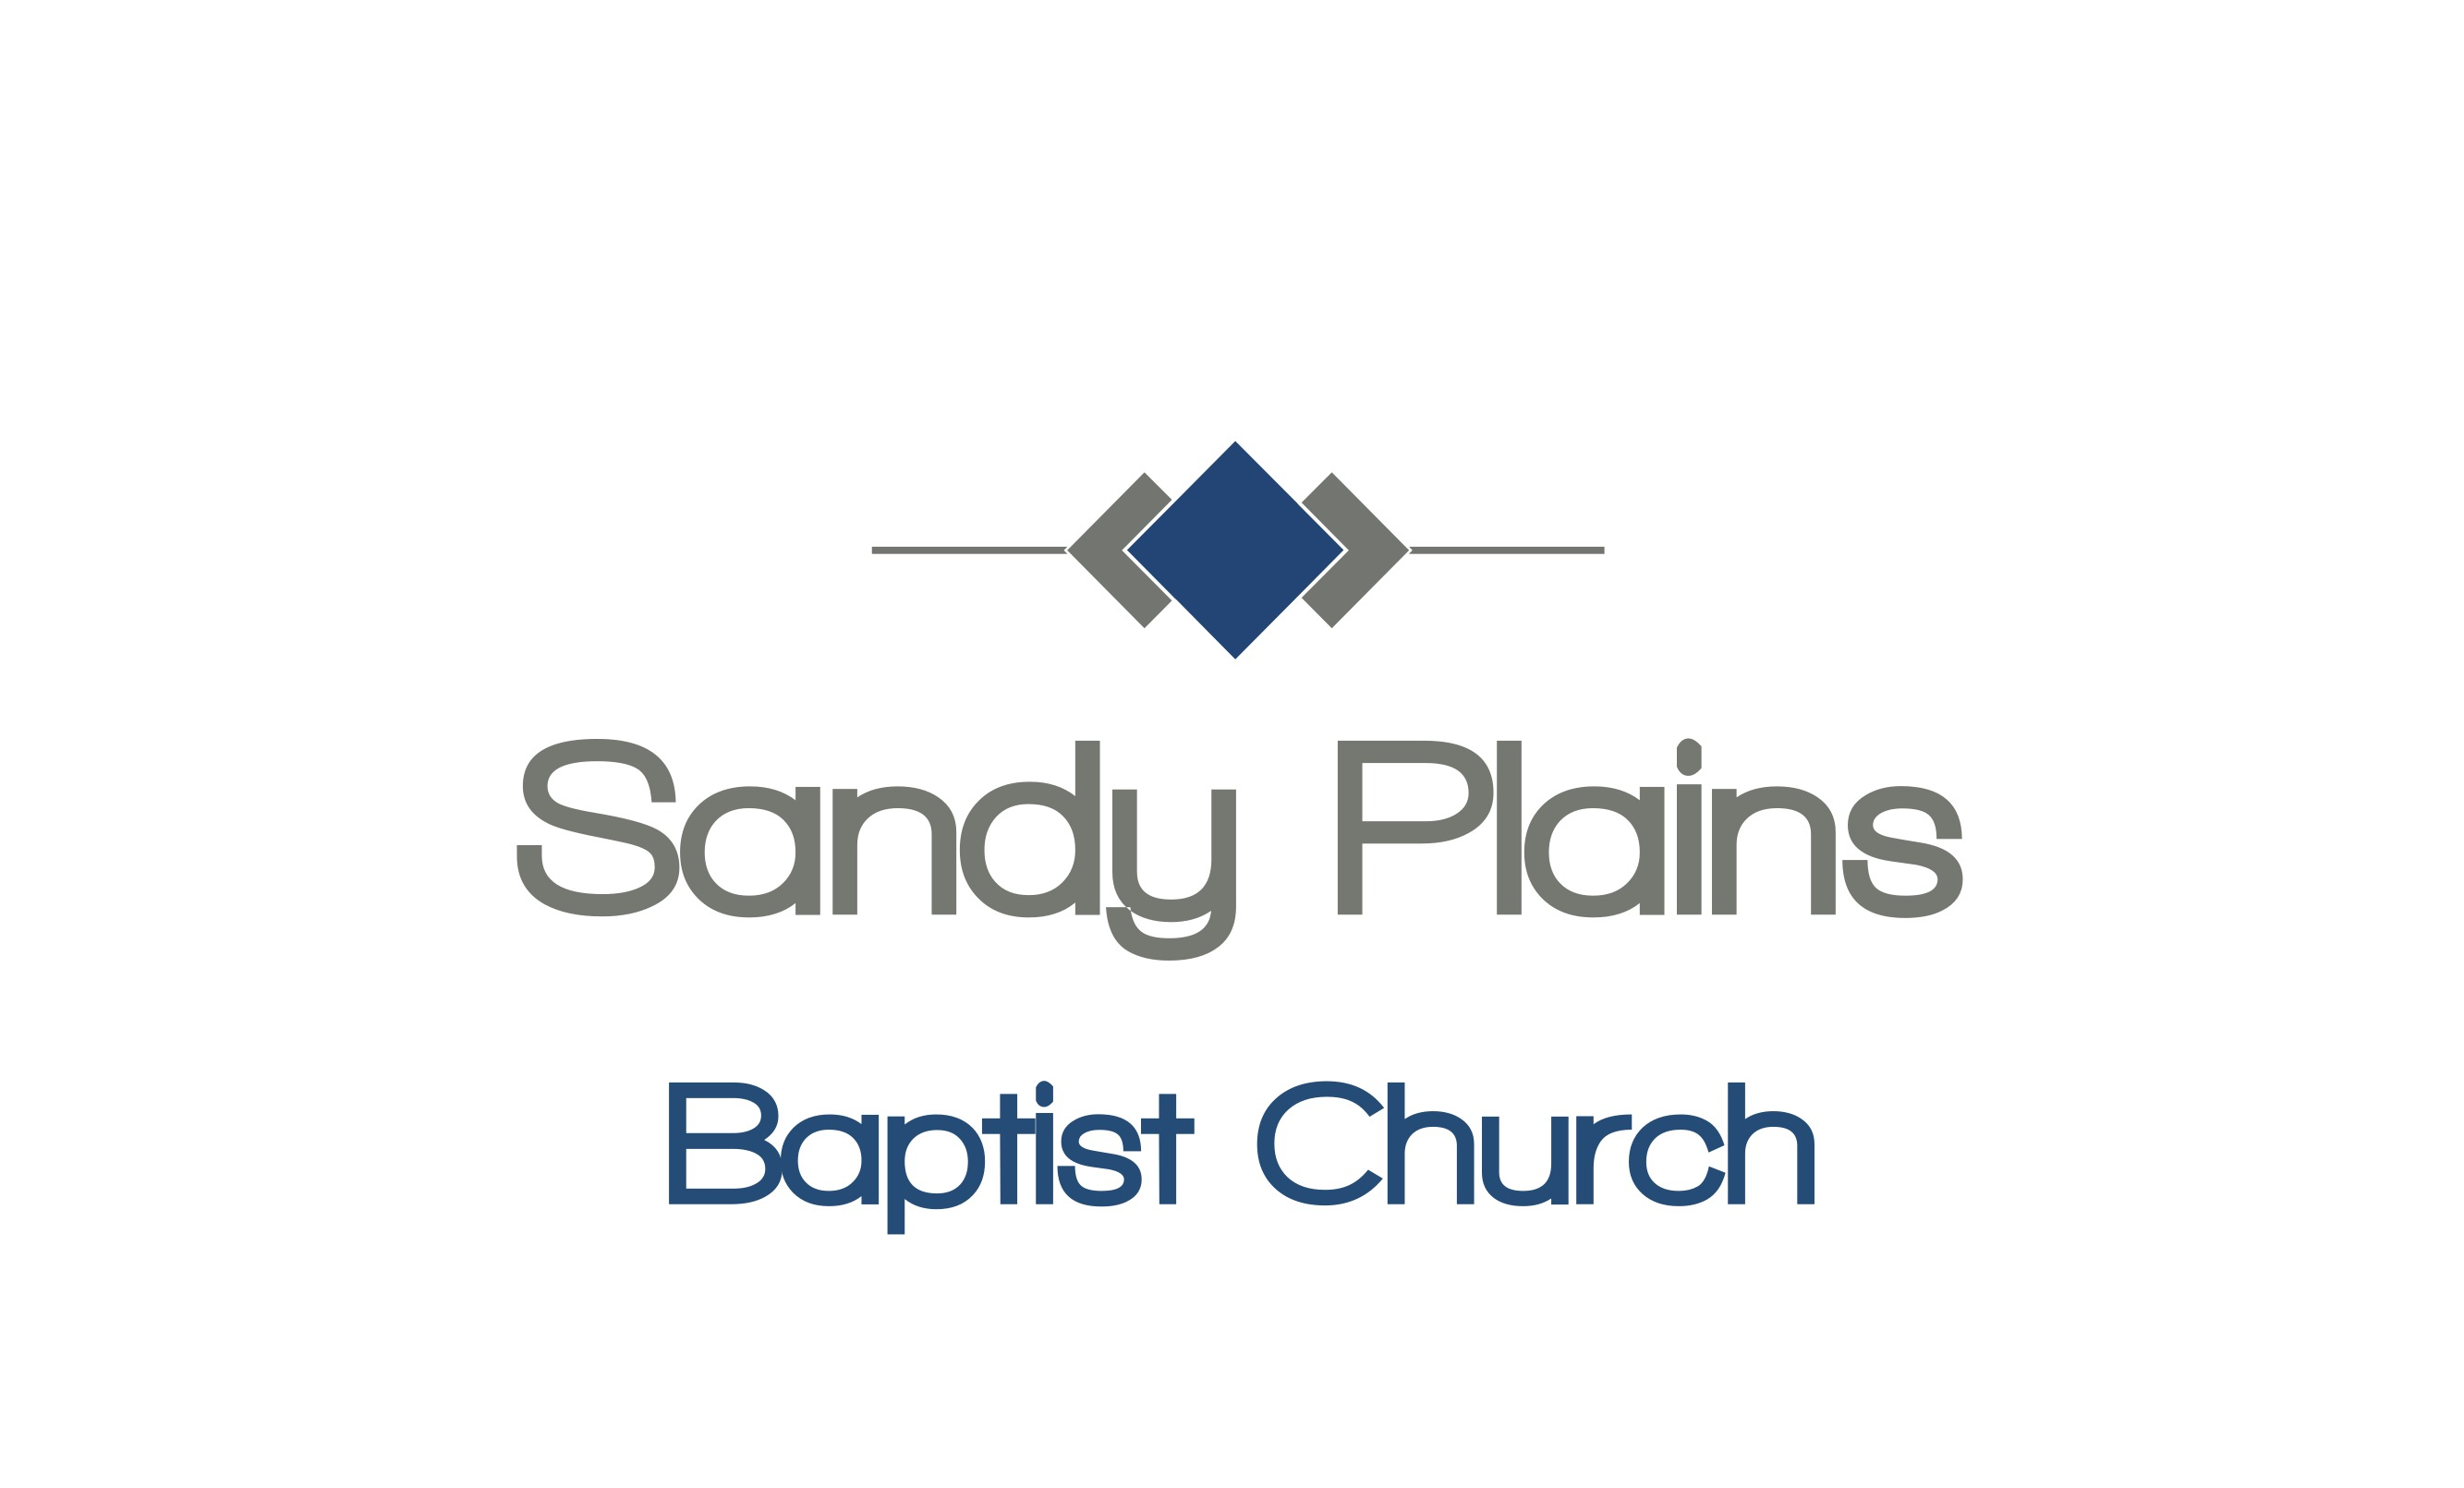 Sandy Plains Baptist Church - Gastonia churches, Clover churches, Lake Wylie churches, Belmont